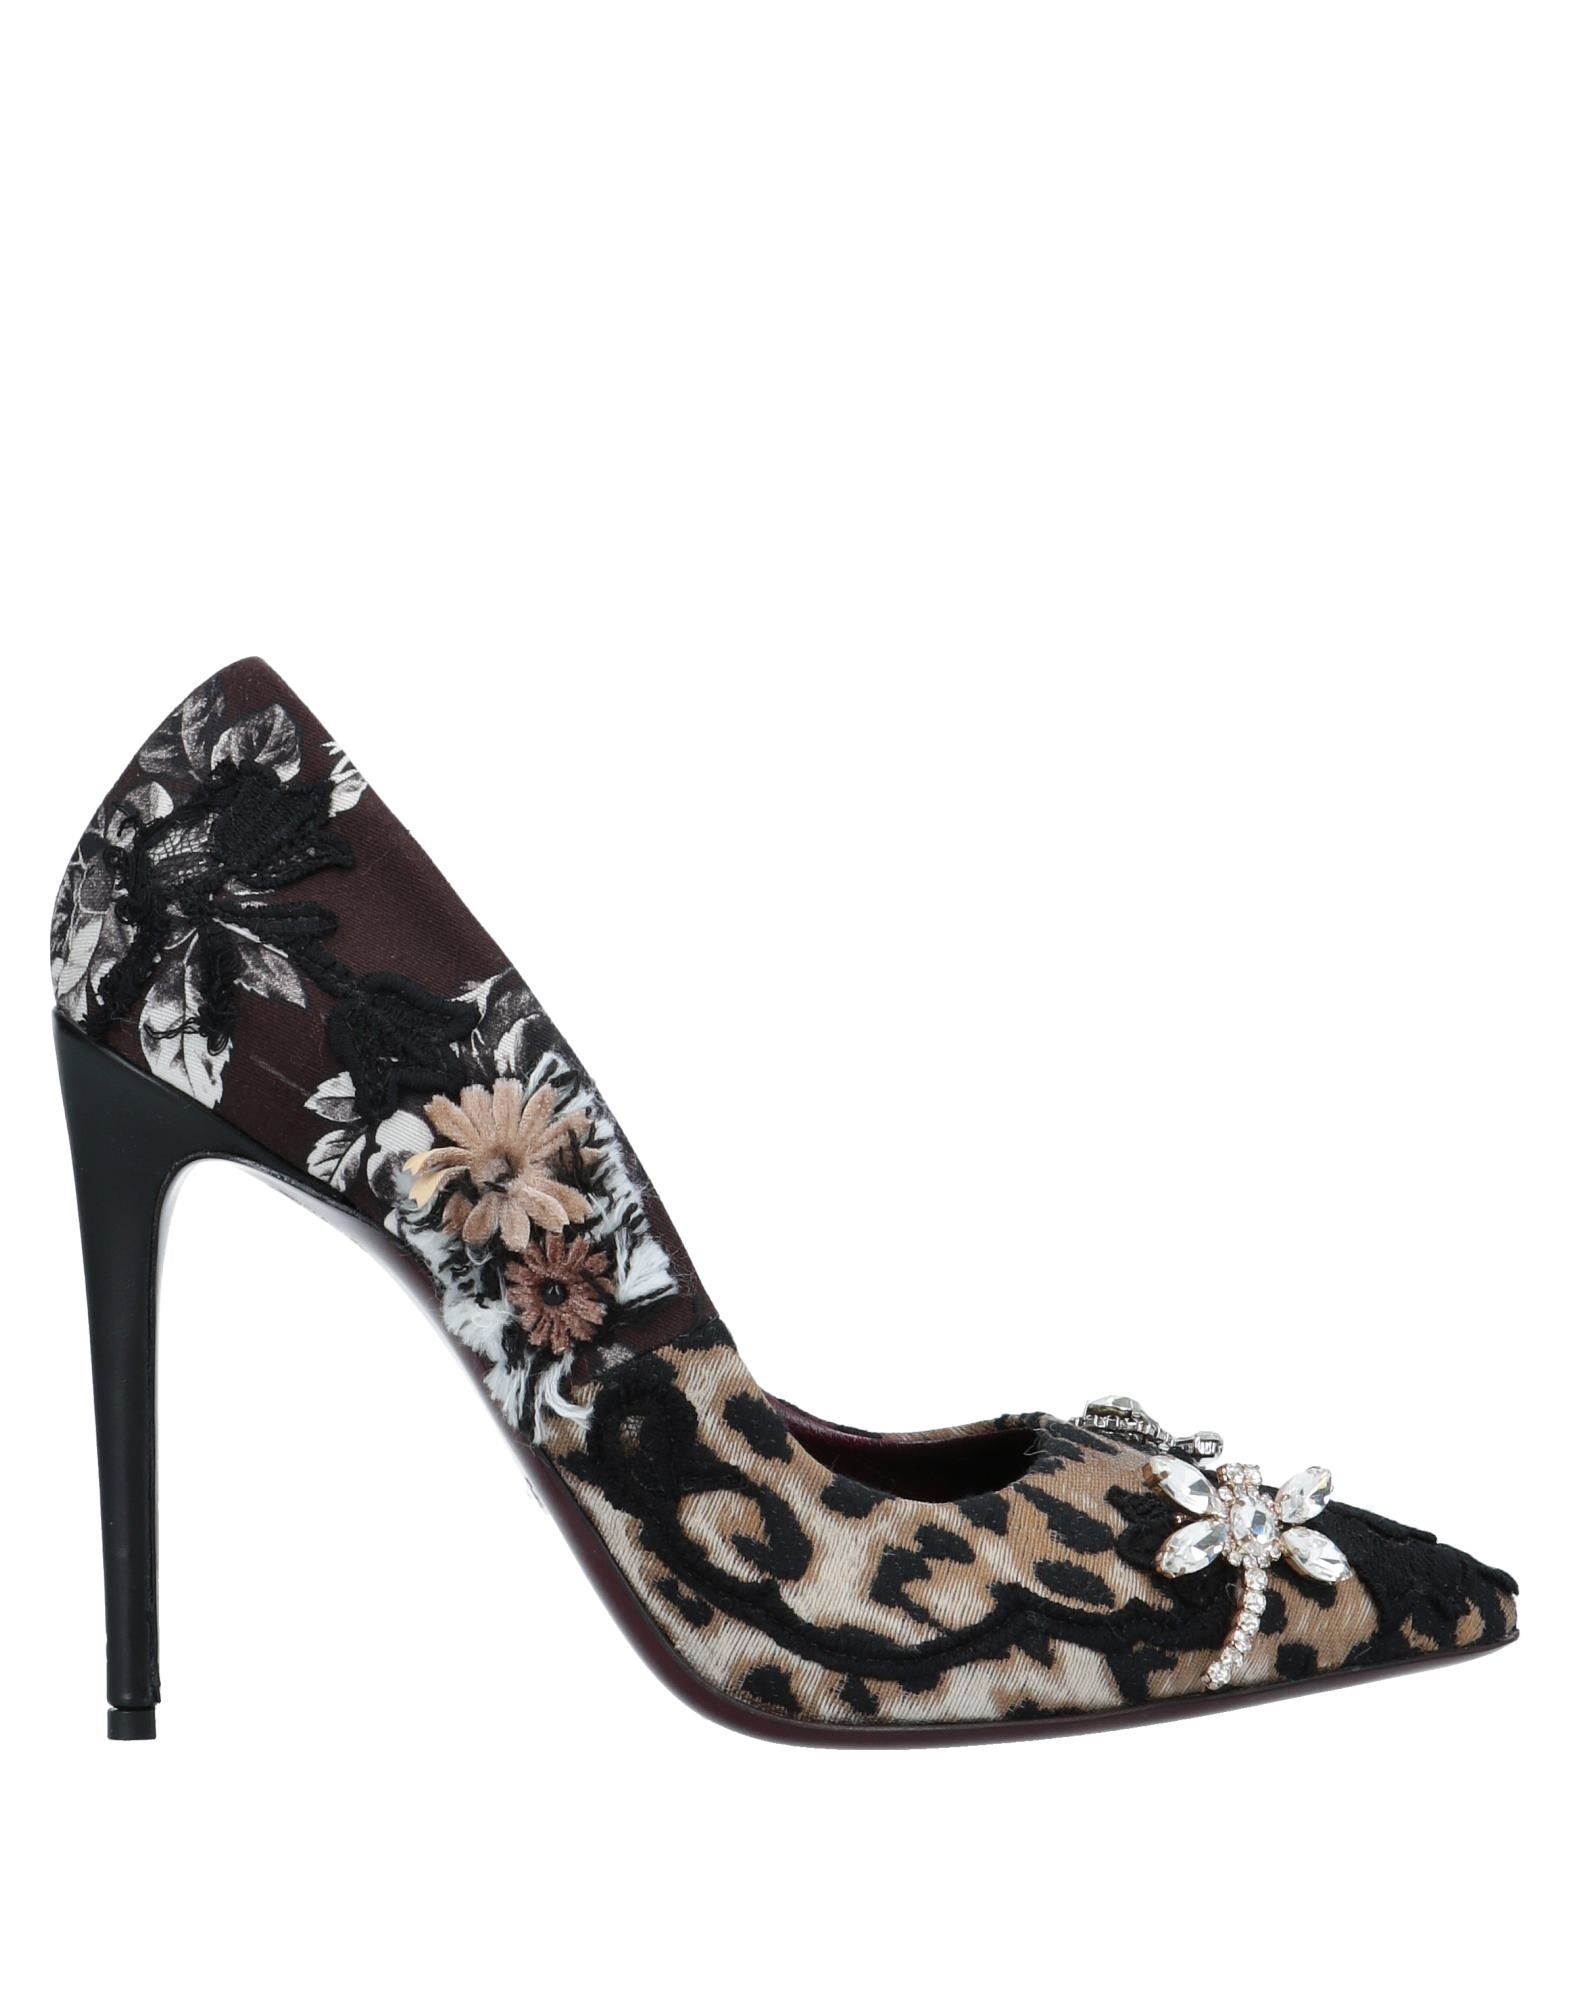 Antonio Marras Pump online - Women Antonio Marras Pumps online Pump on  Australia - 11568846BO 7585af